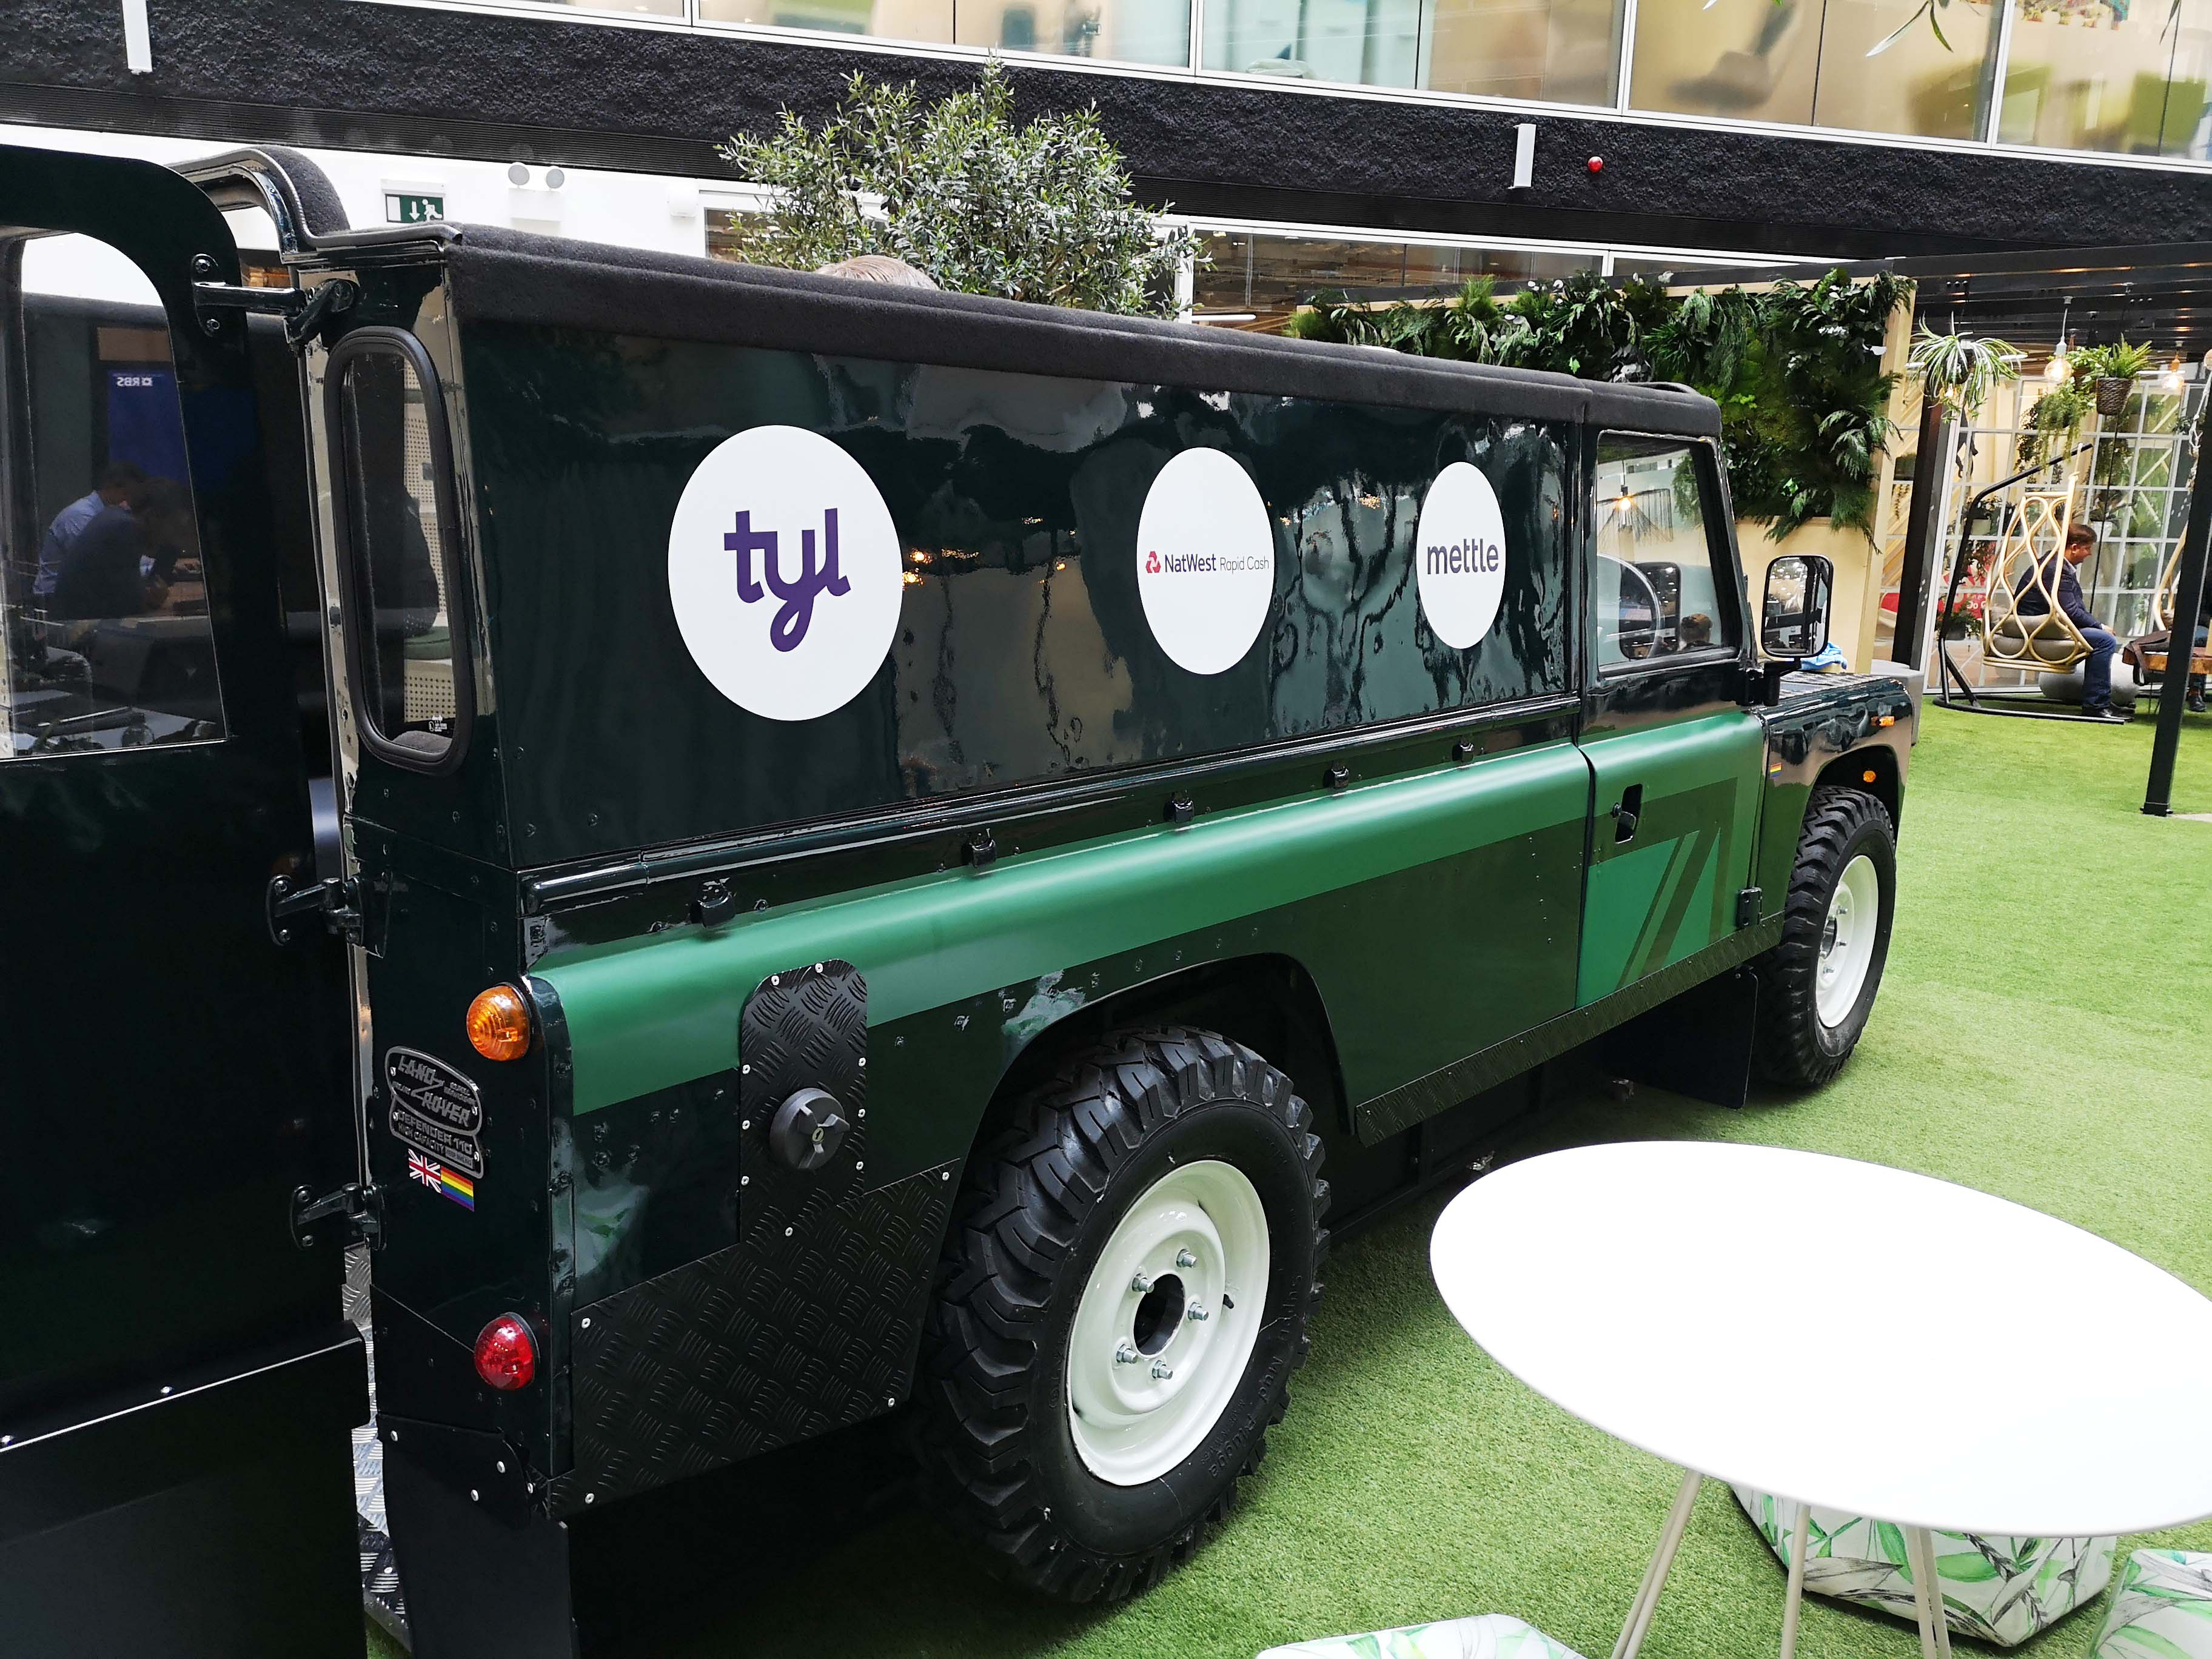 Land Rover Branding at Natwest London